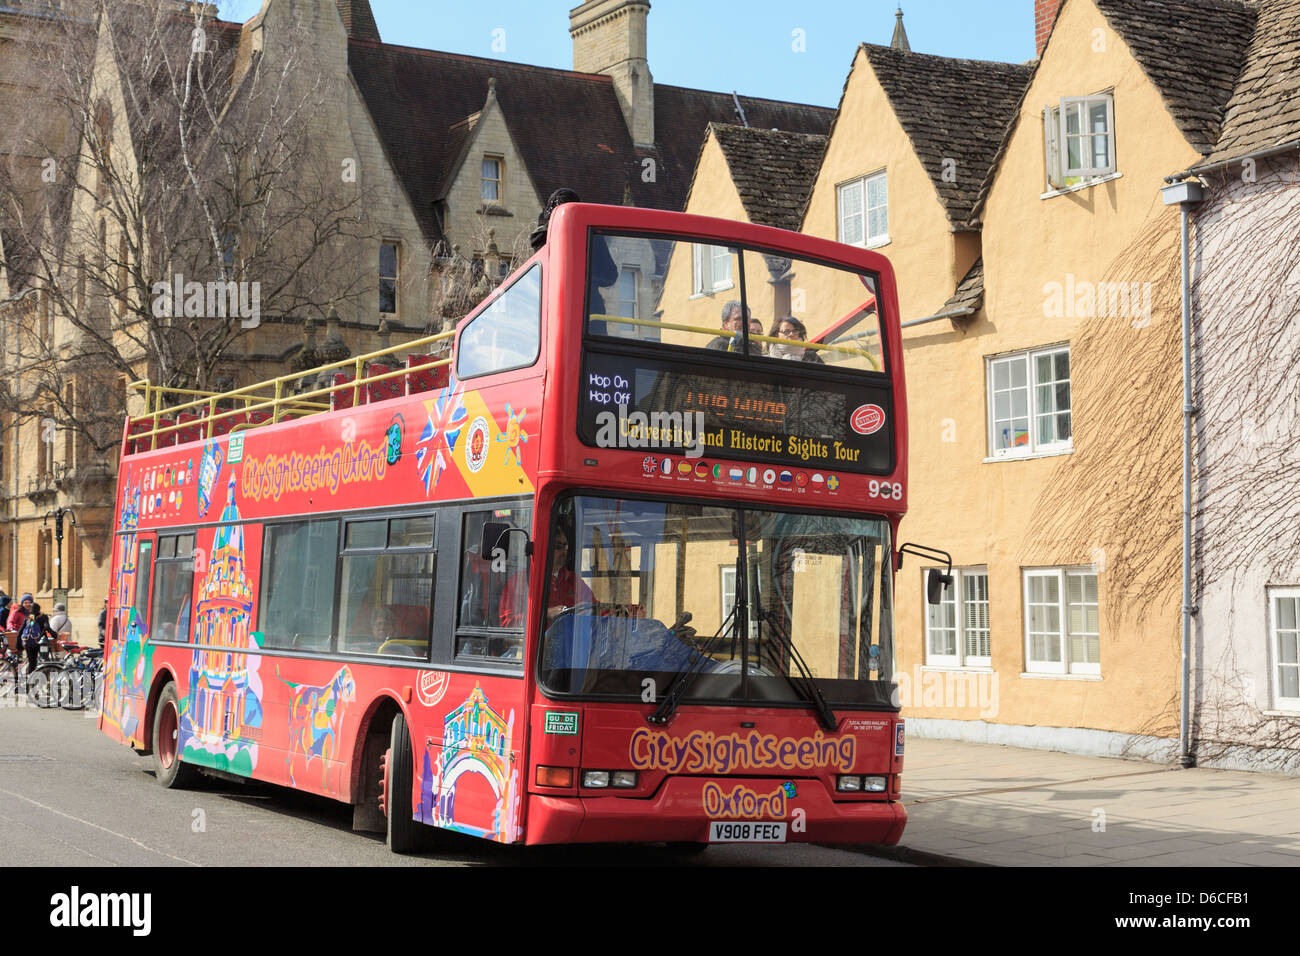 Red Hop On Hop Off tourists sightseeing bus on university and historic sights tour of the city. Oxford, Oxfordshire, - Stock Image